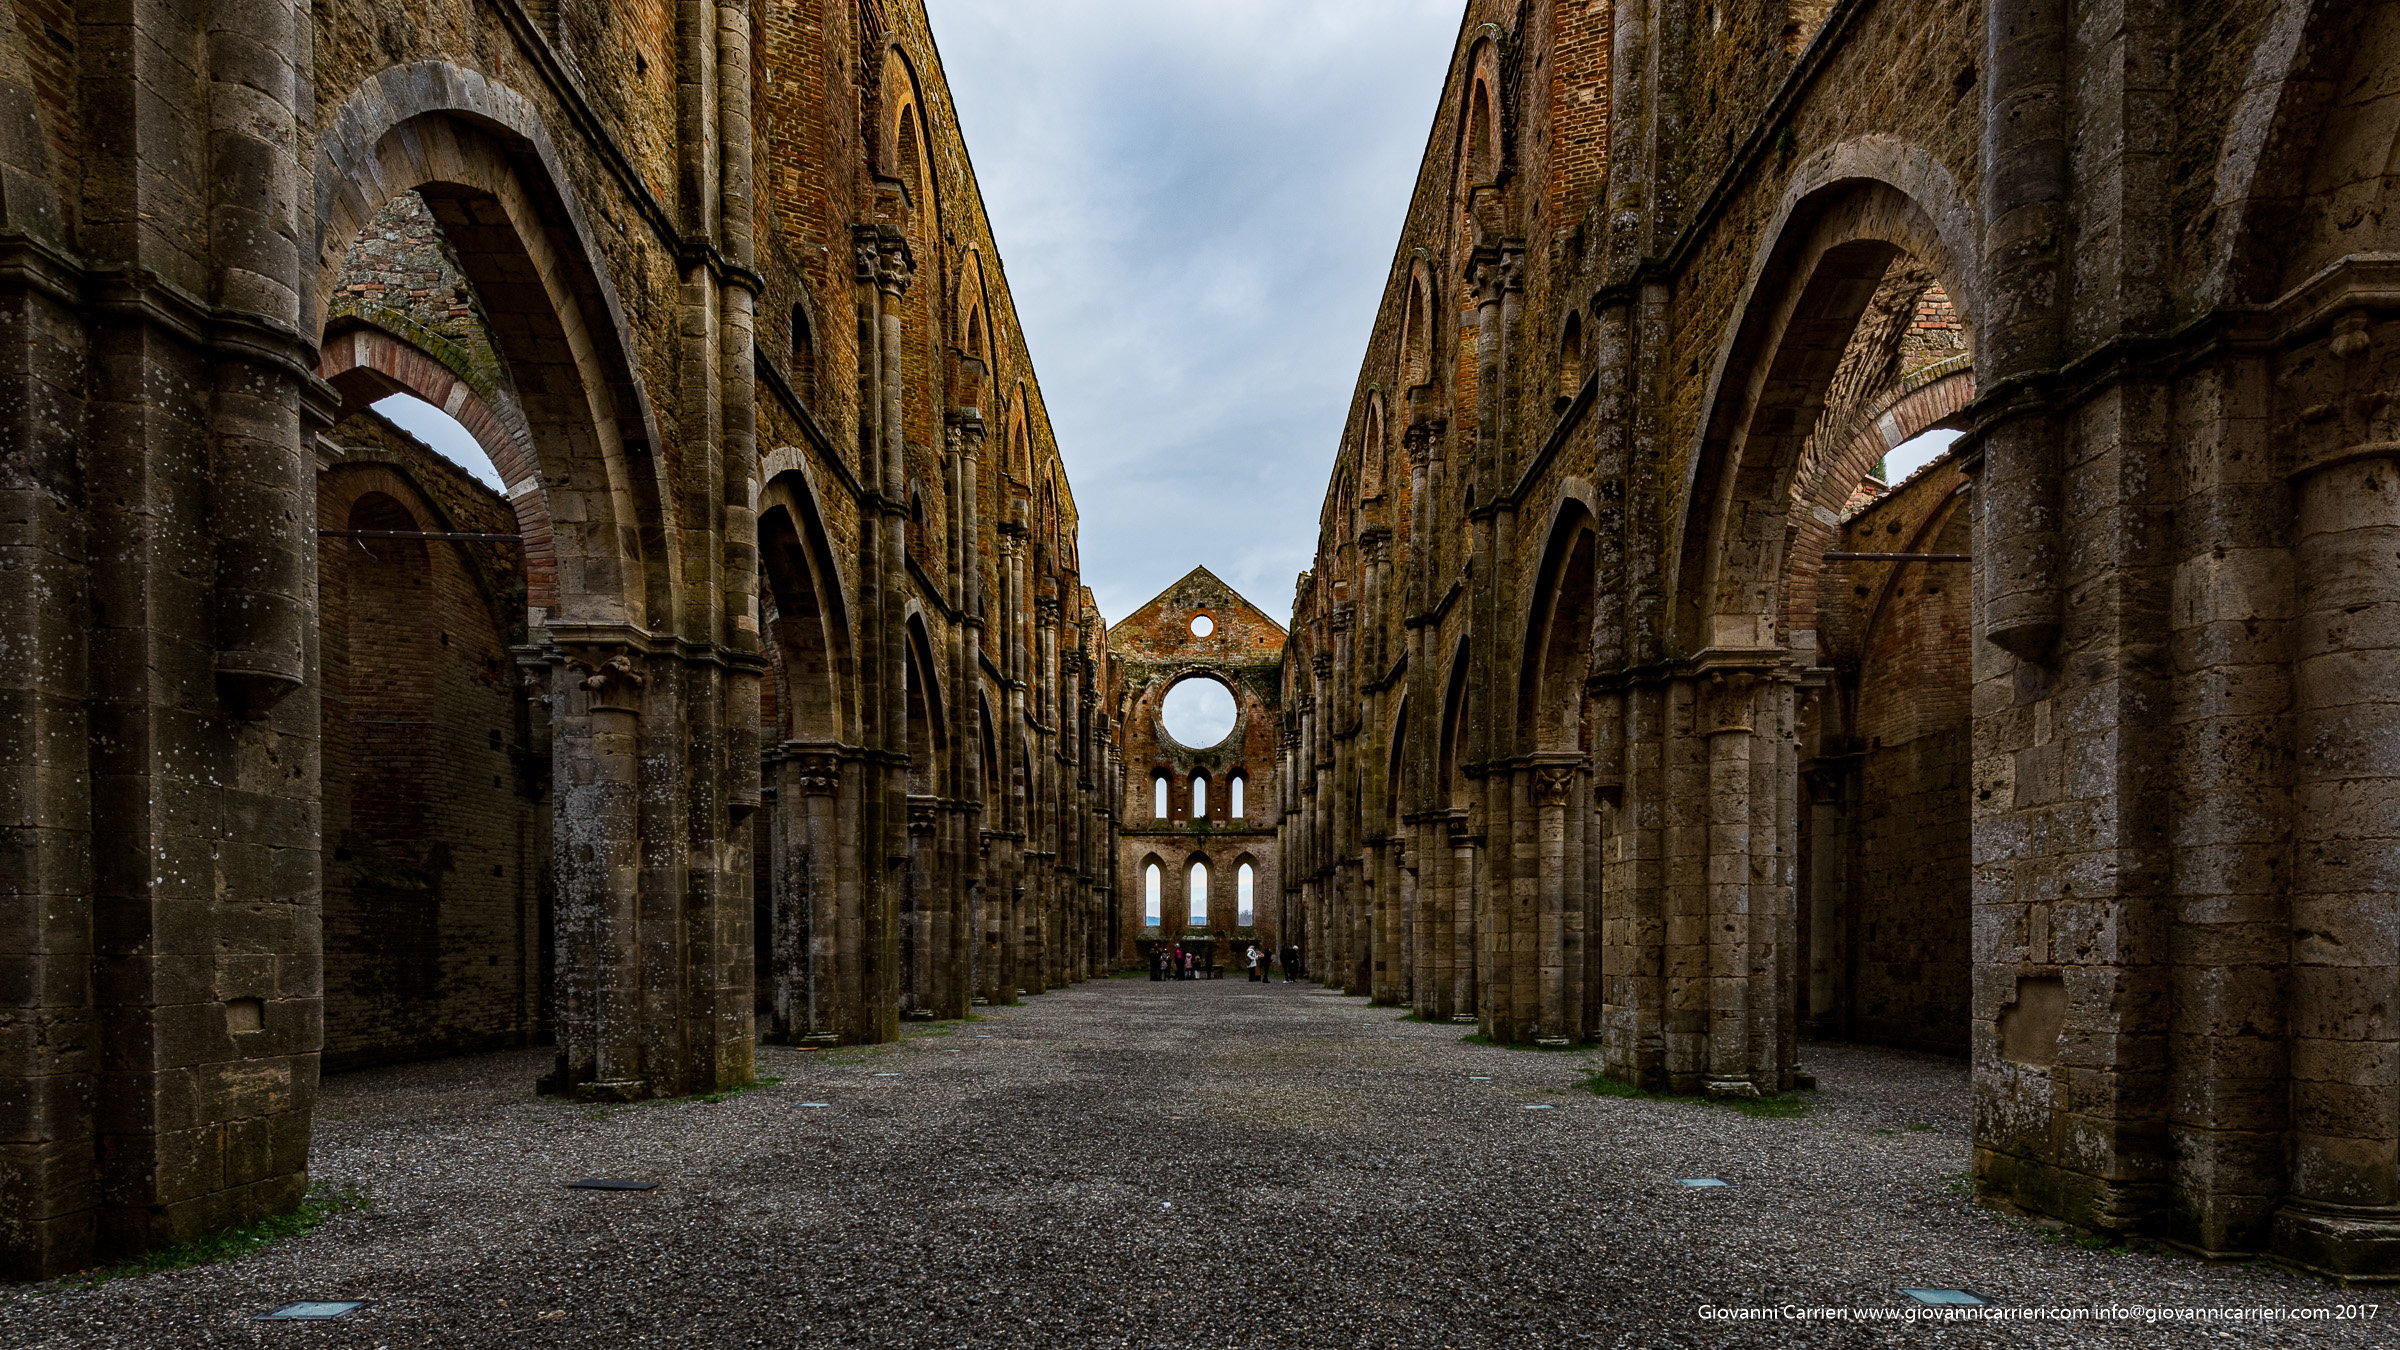 Internal view of the nave of the Abbey of San Galgano